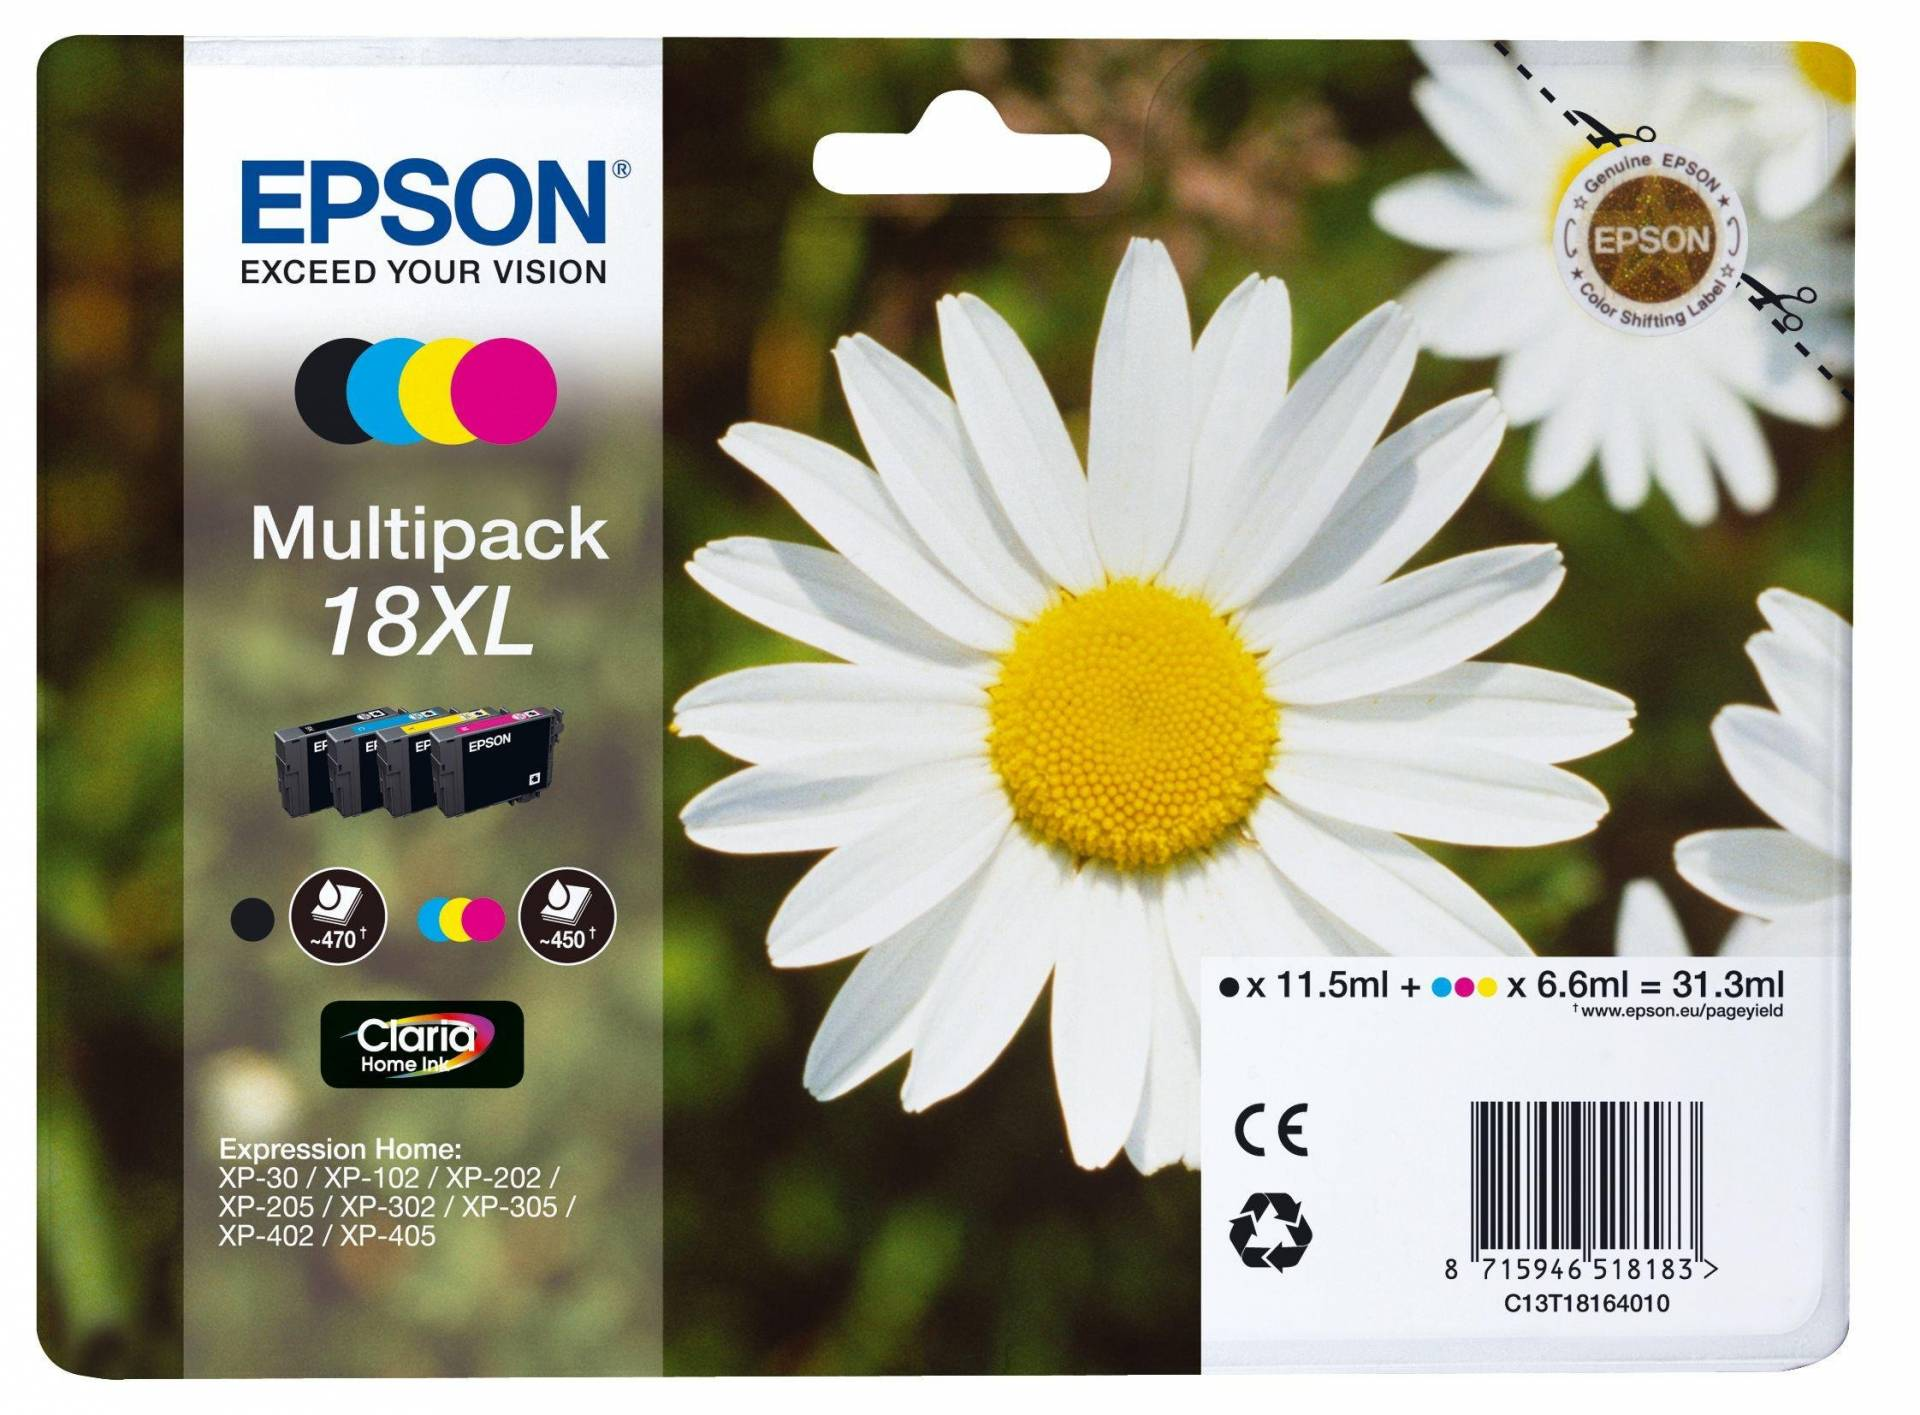 Epson Daisy 18XL Ink Cartridges Multipack from Epson